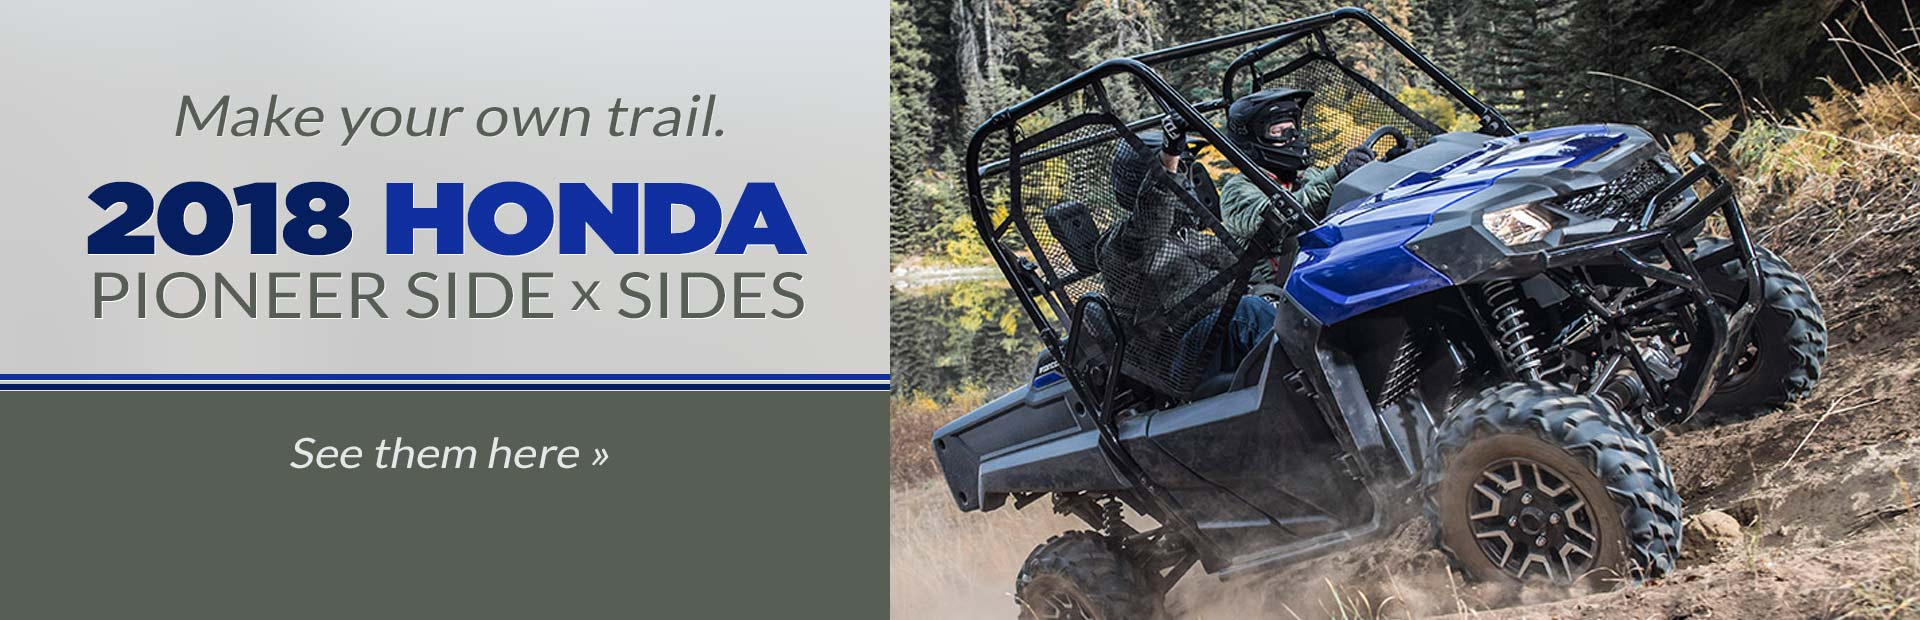 2018 Honda Pioneer Side x Sides: Click here to view the models.